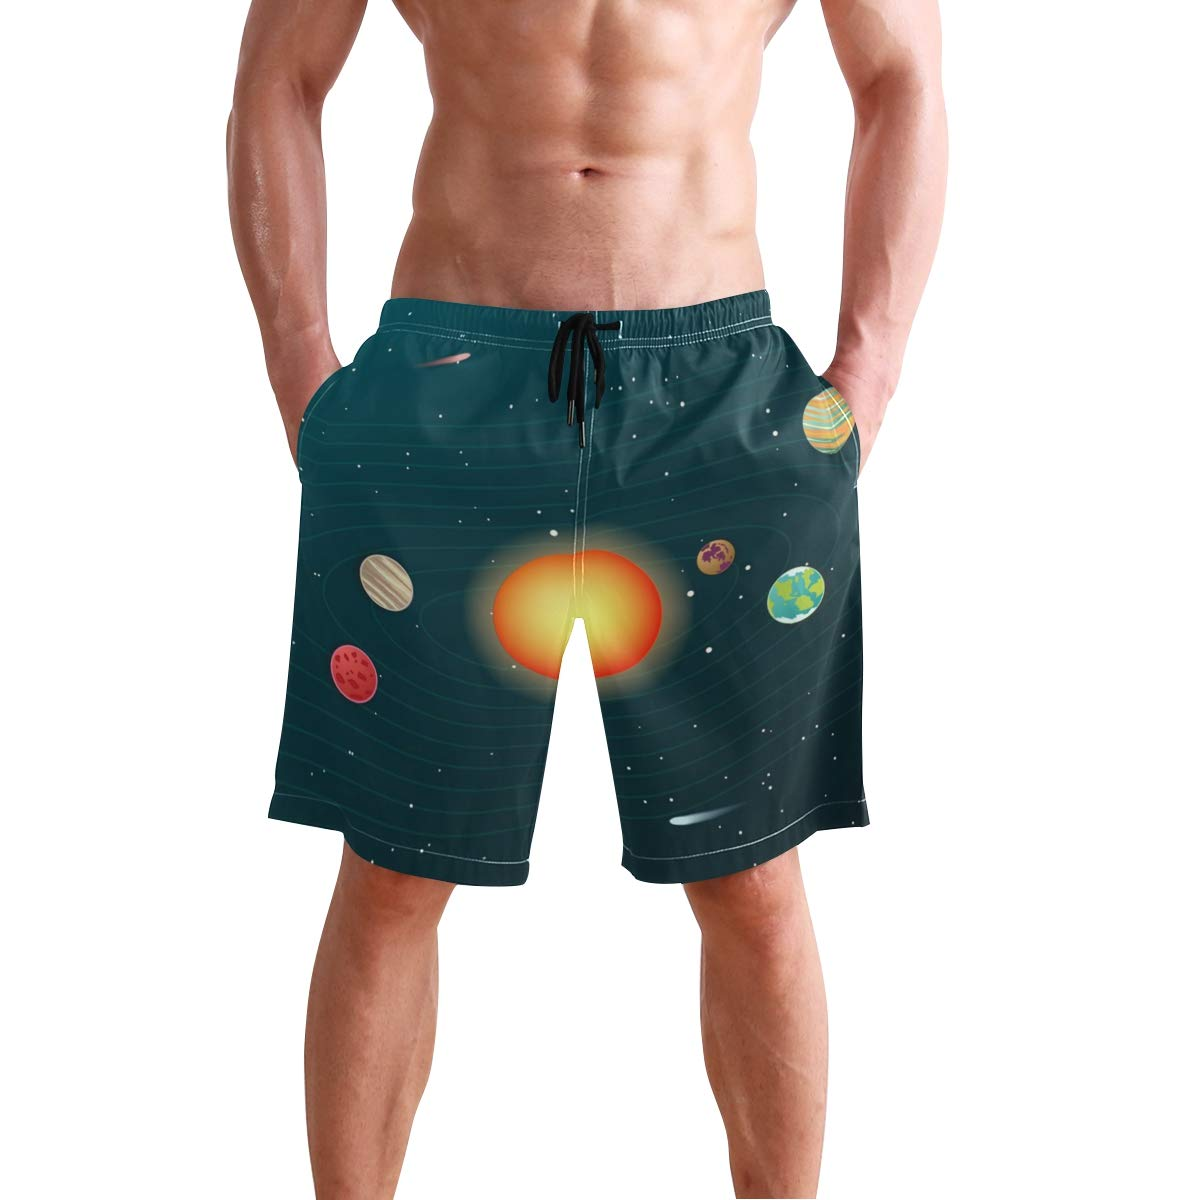 KUWT Mens Swim Trunks Solar System Planet Quick Dry Beach Shorts Summer Surf Board Shorts